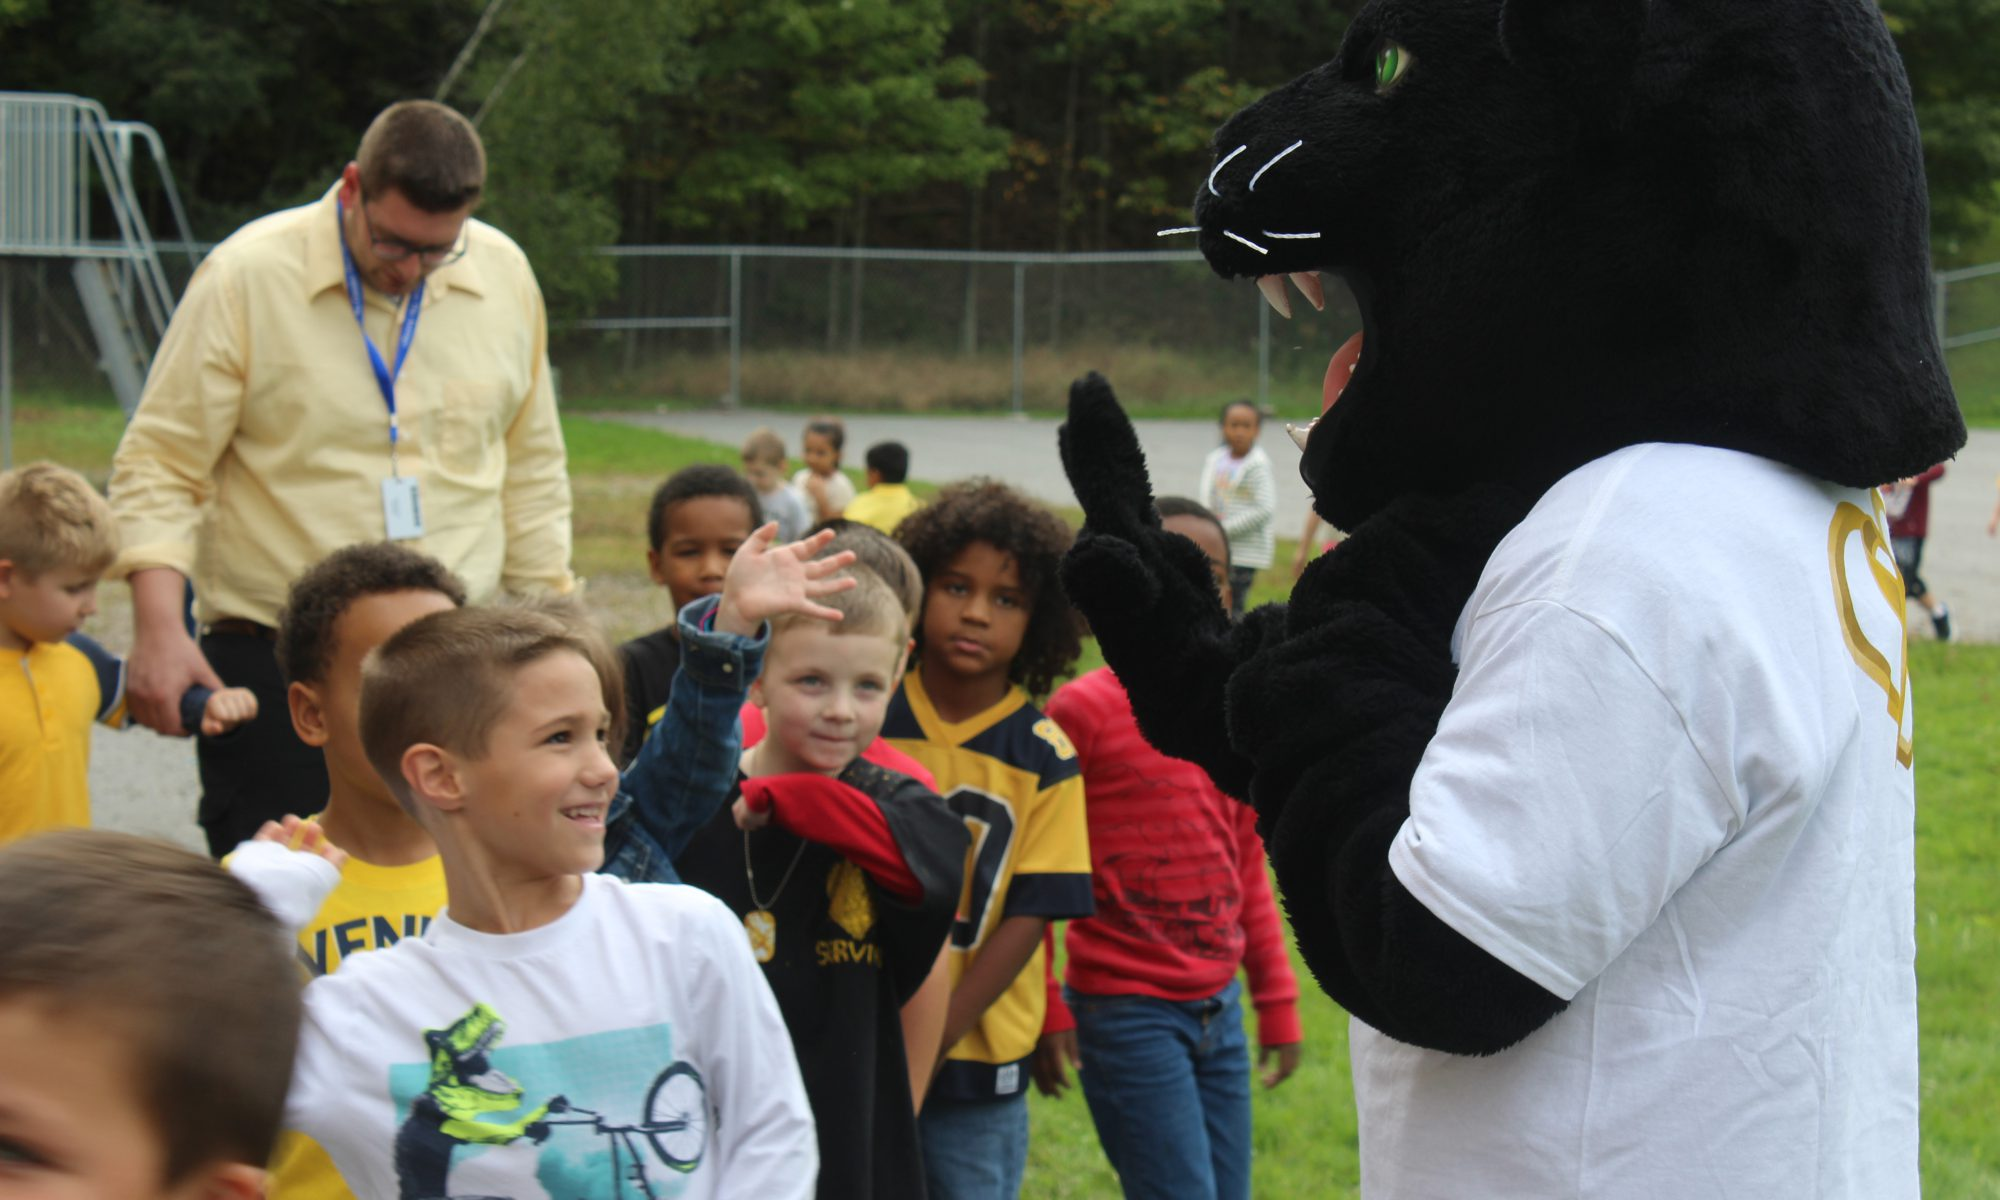 Group of elementary students gather around Monti the Panther smiling and saving to him